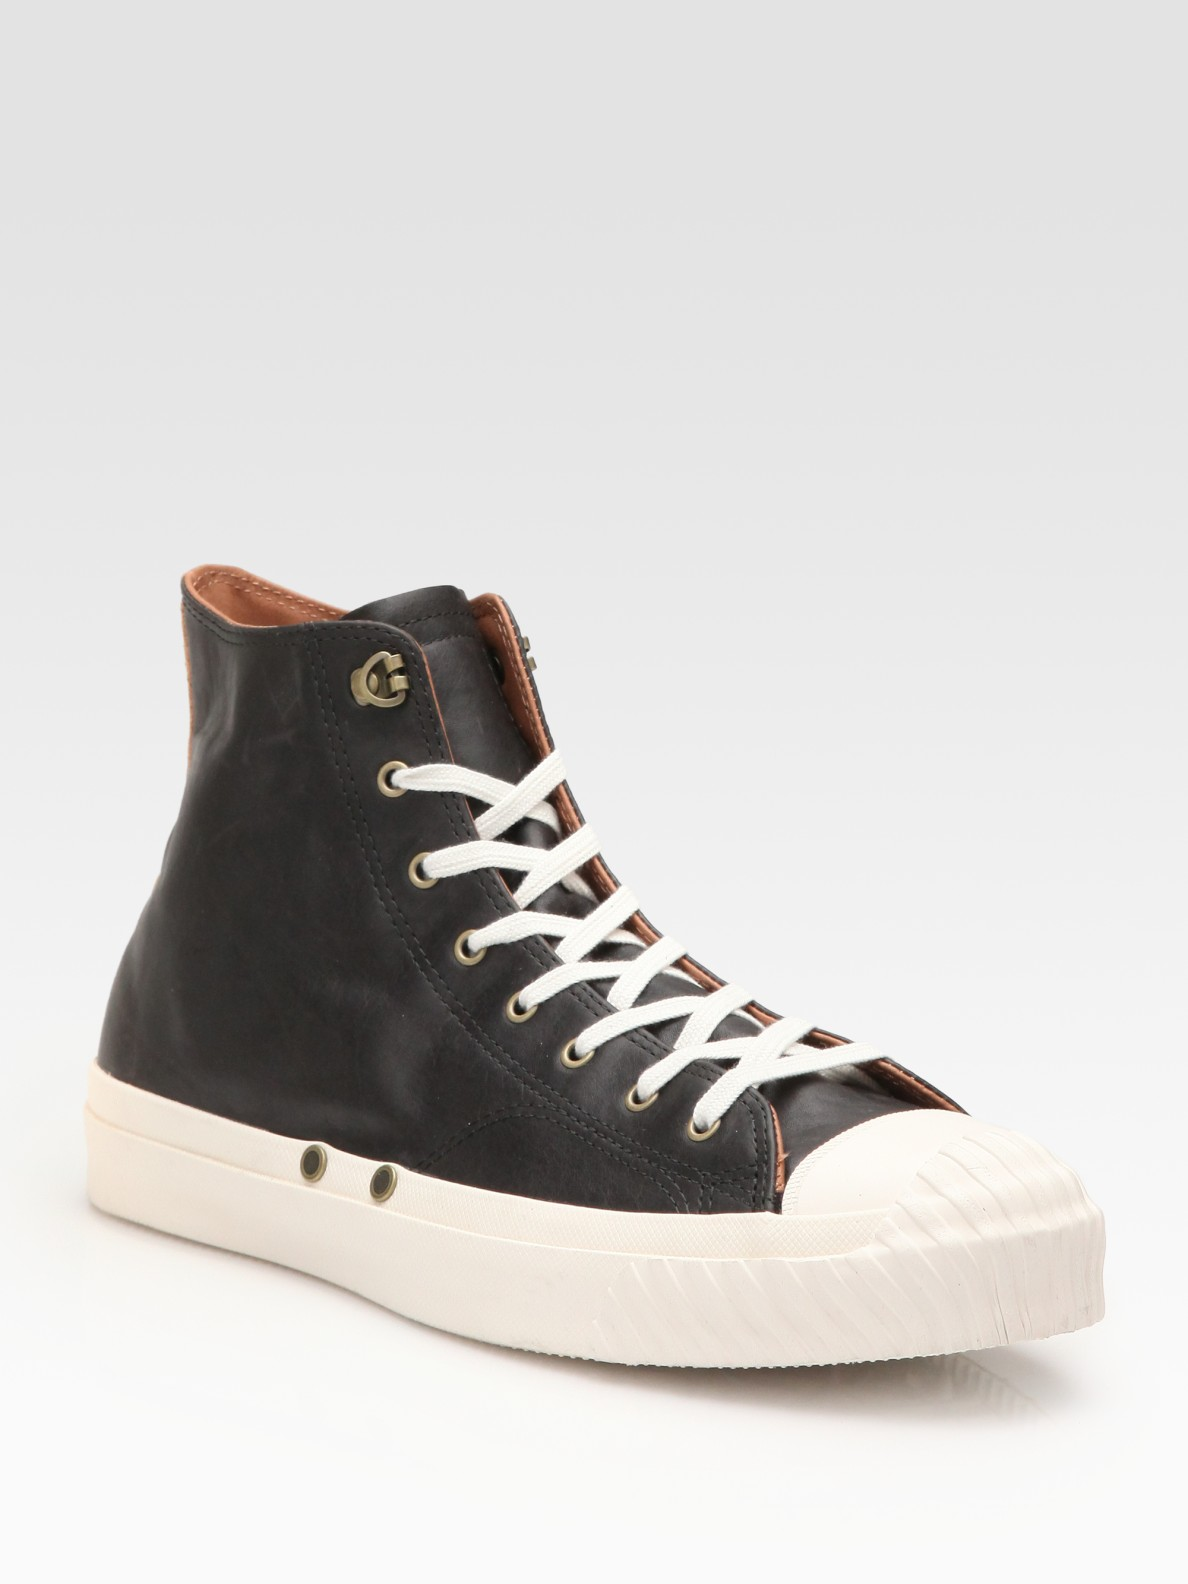 Converse Chuck Taylor Bosey High Tops In Black For Men Lyst